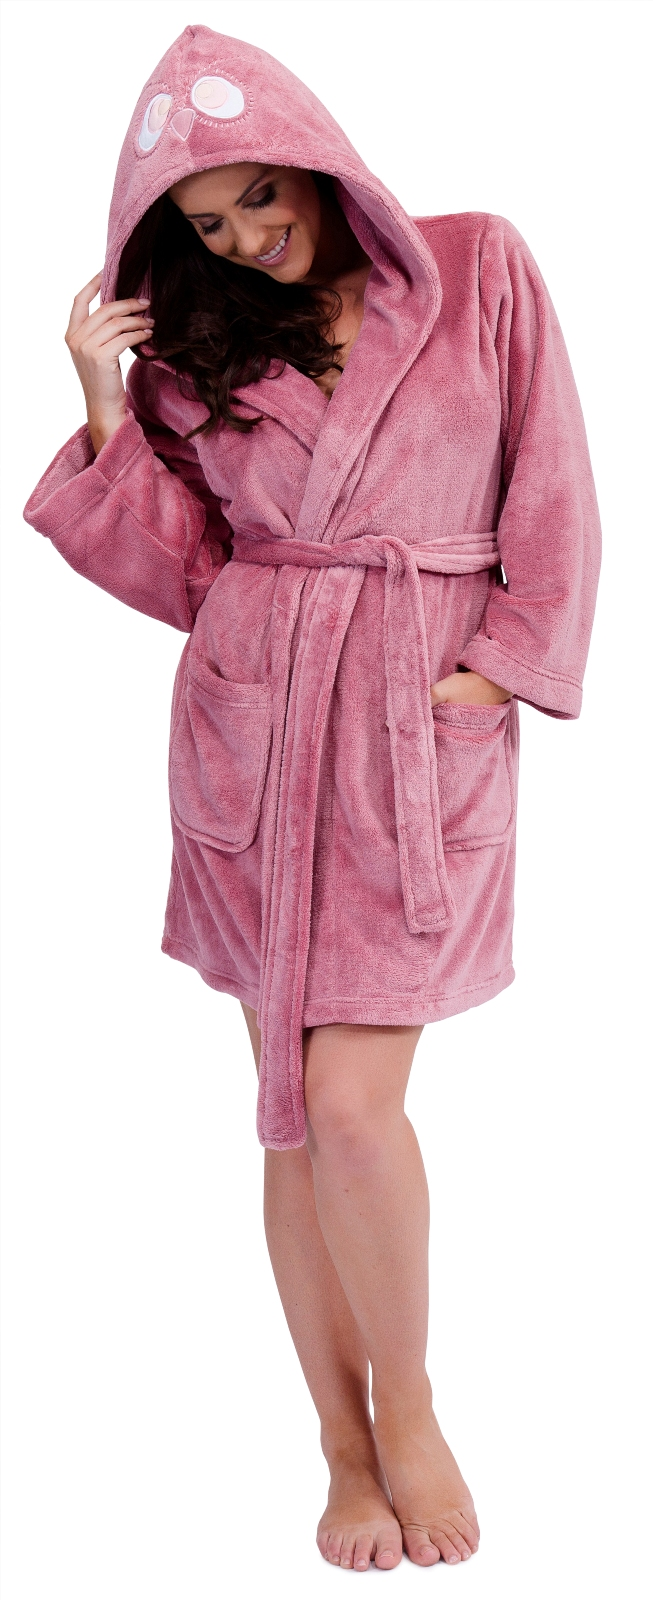 Details about WOMENS HOODED SHORT BATH ROBE DRESSING GOWN HOUSECOAT WITH BELT LADIES SM-XL